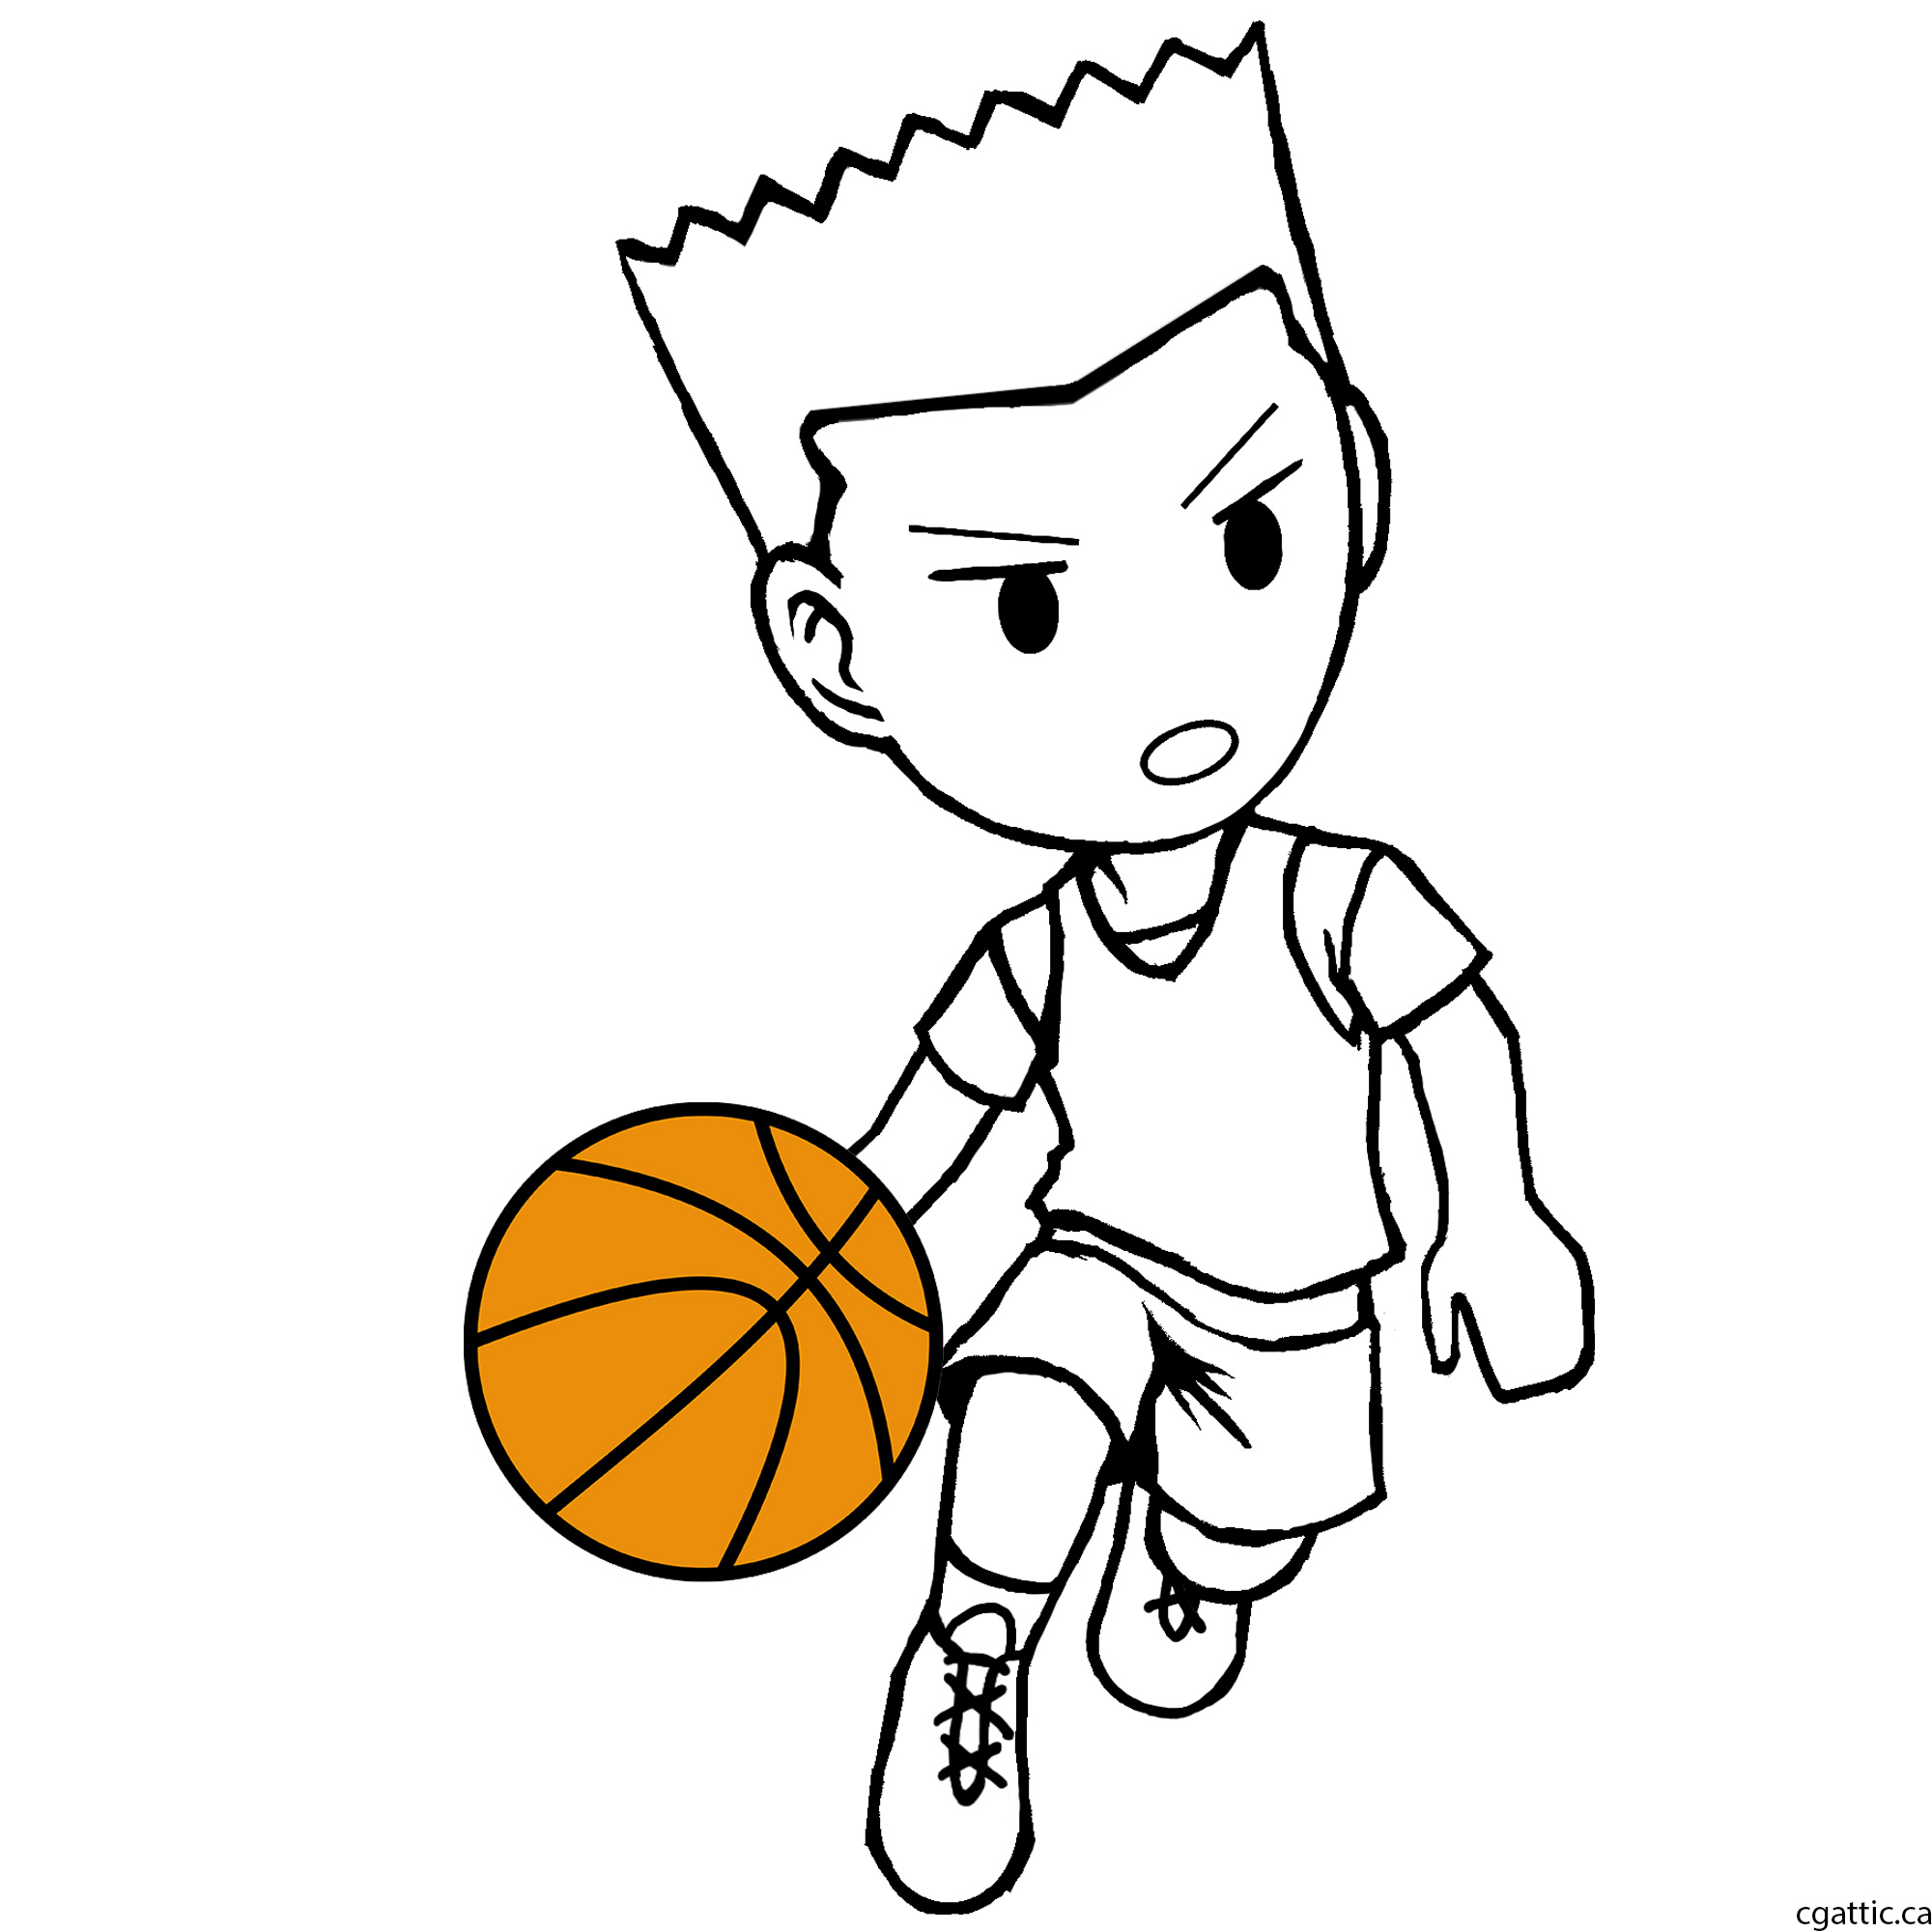 2000x2000 Cartoon Basketball Player Drawing In 4 Steps With Photoshop